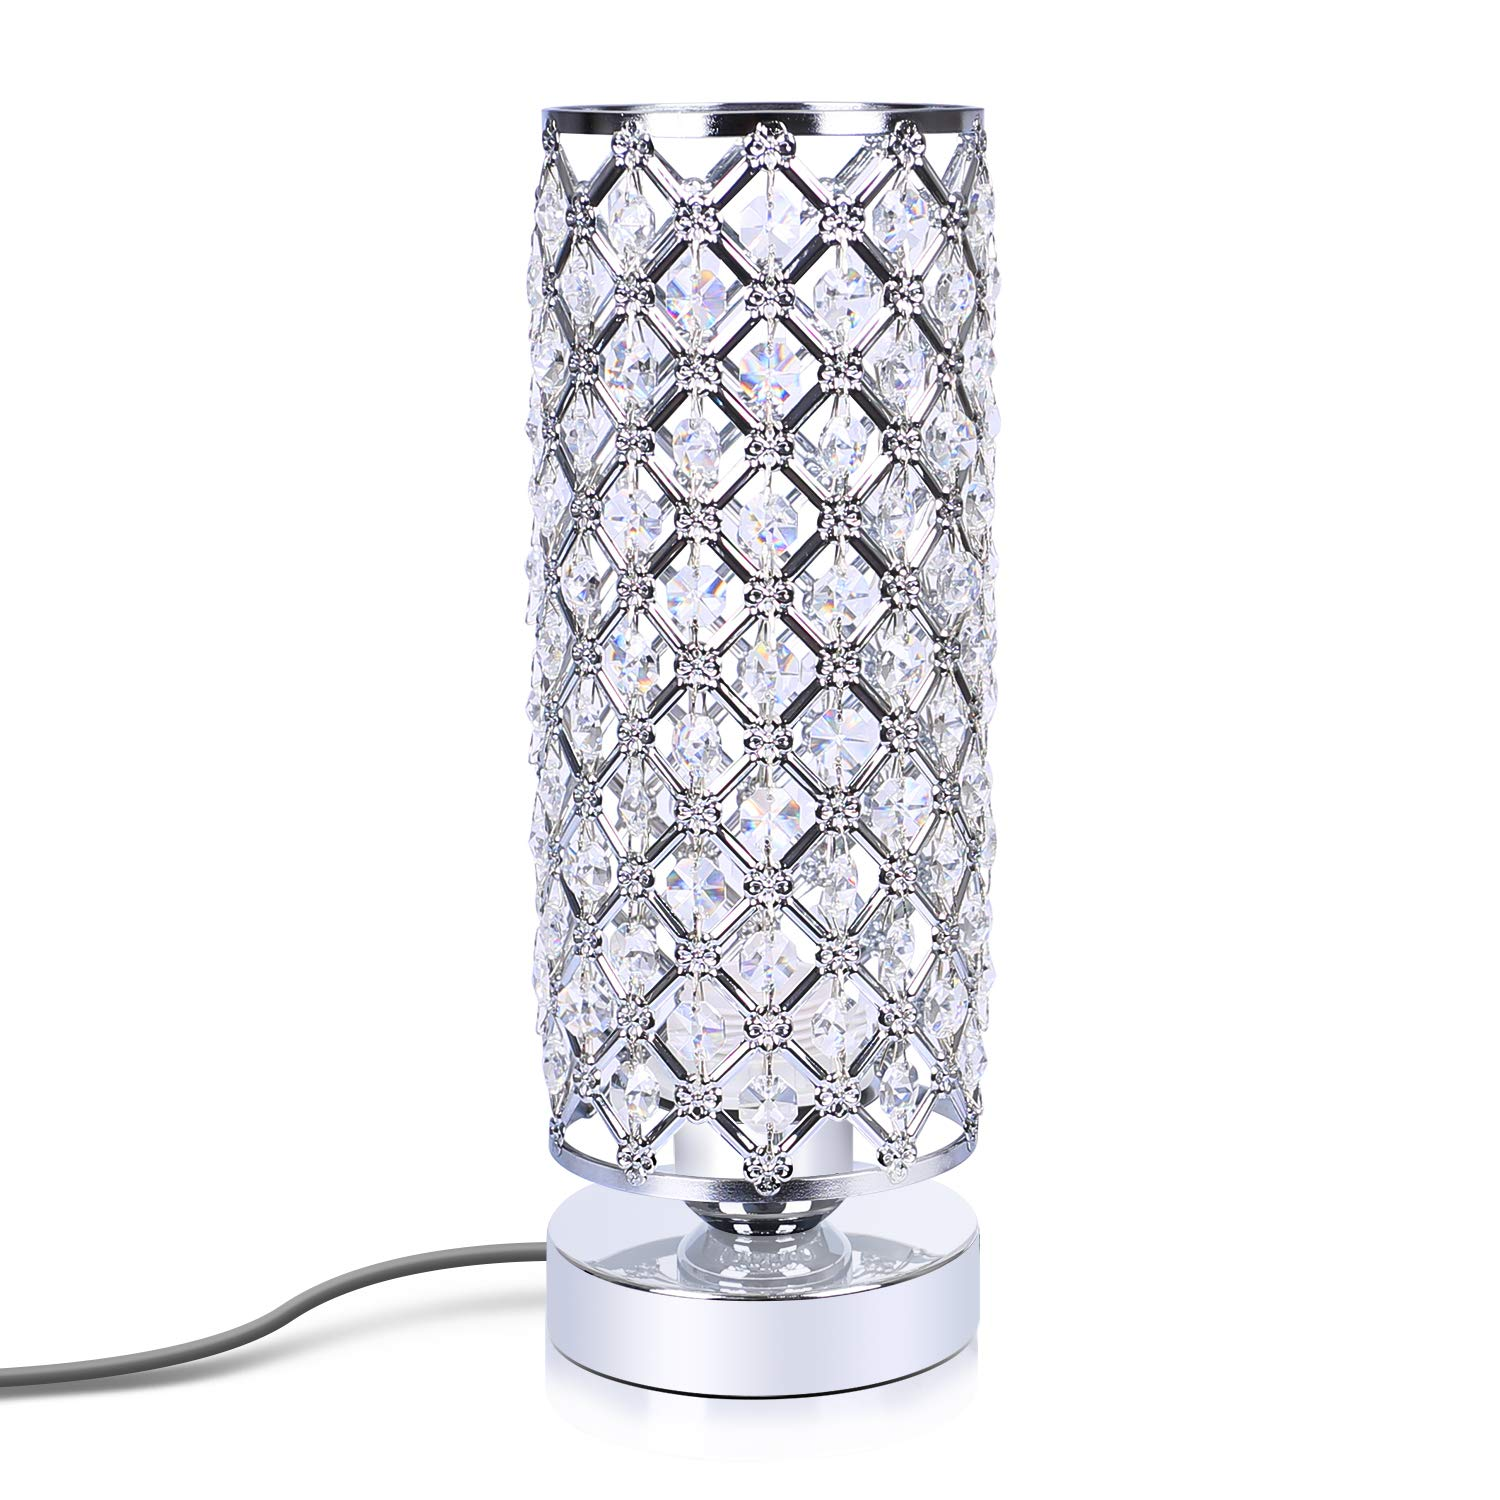 Crystal Bedside Table lamp, Aooshine Elegant Design Crystal Beside lamp, Round Bedroom Lamps, Table lamp for Living Room, Dressing Room, Family Room,